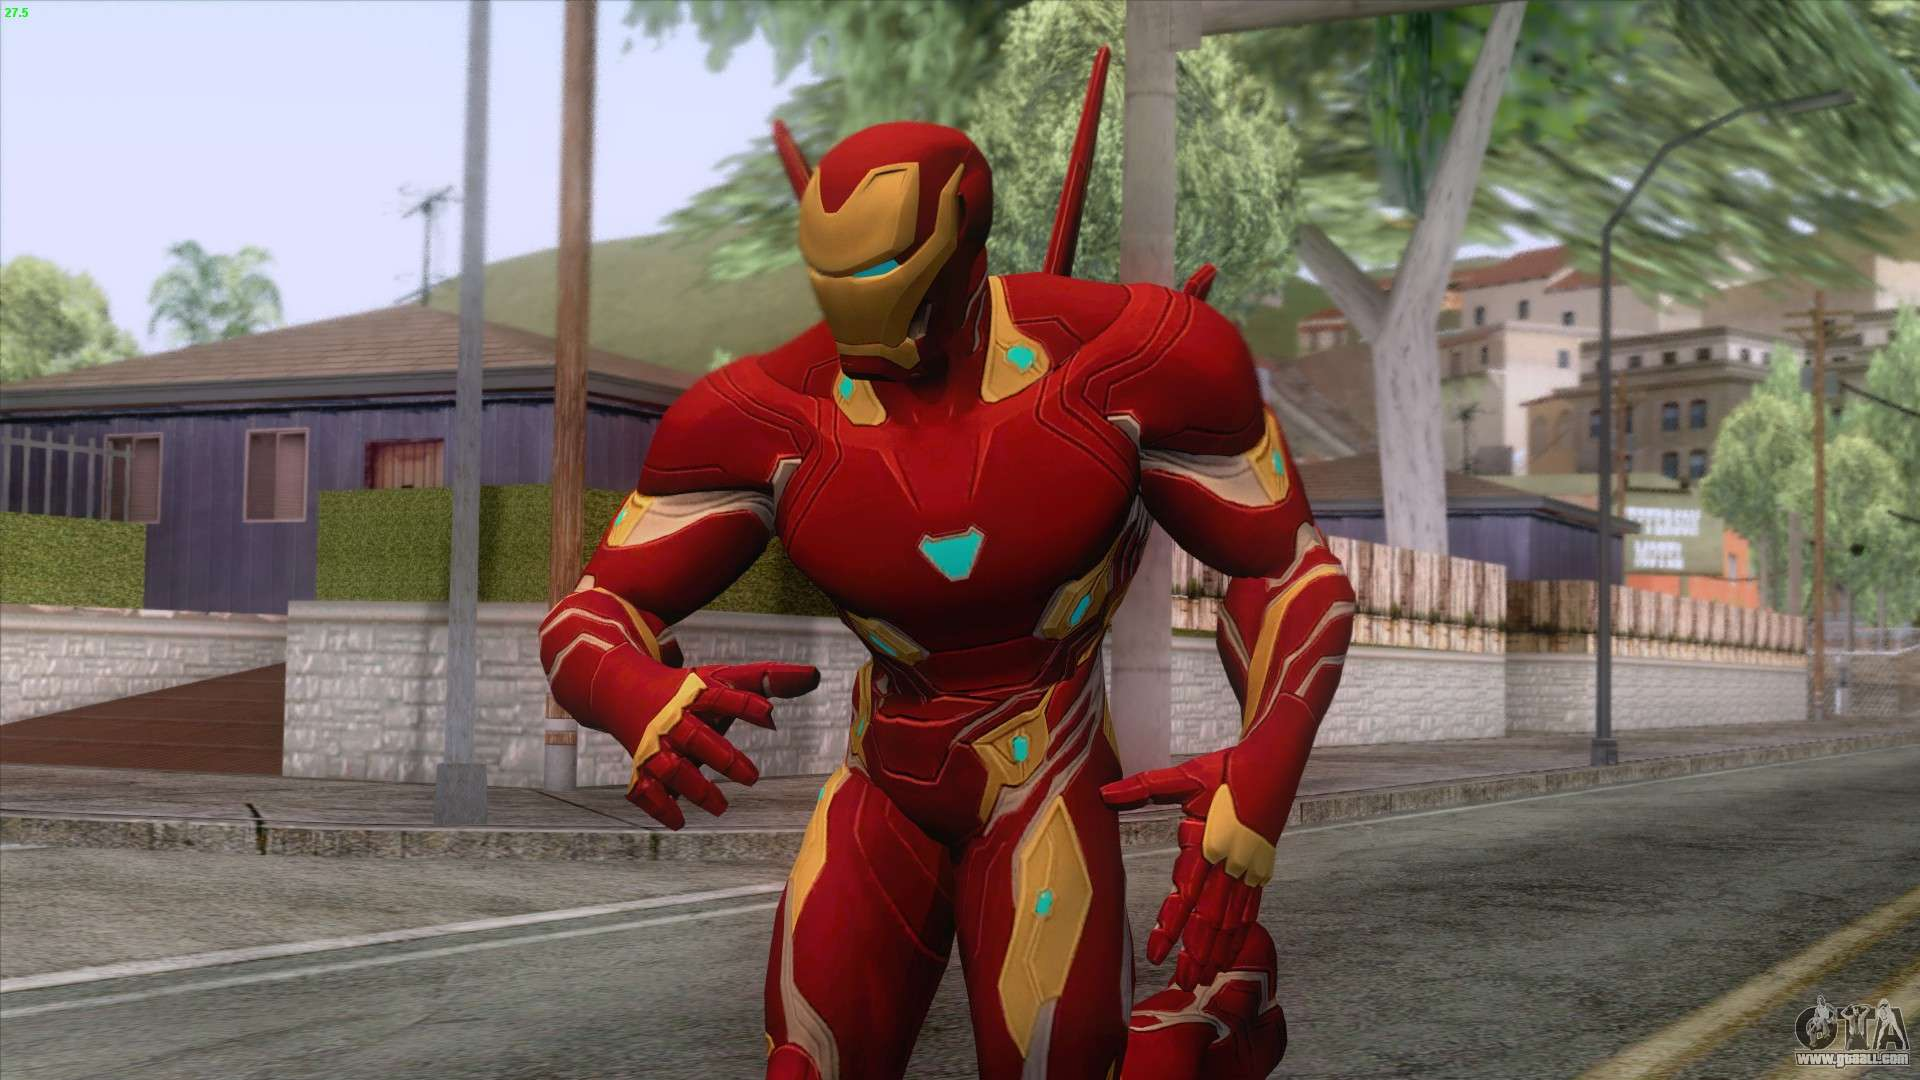 gta 5 iron man mod v2 free download